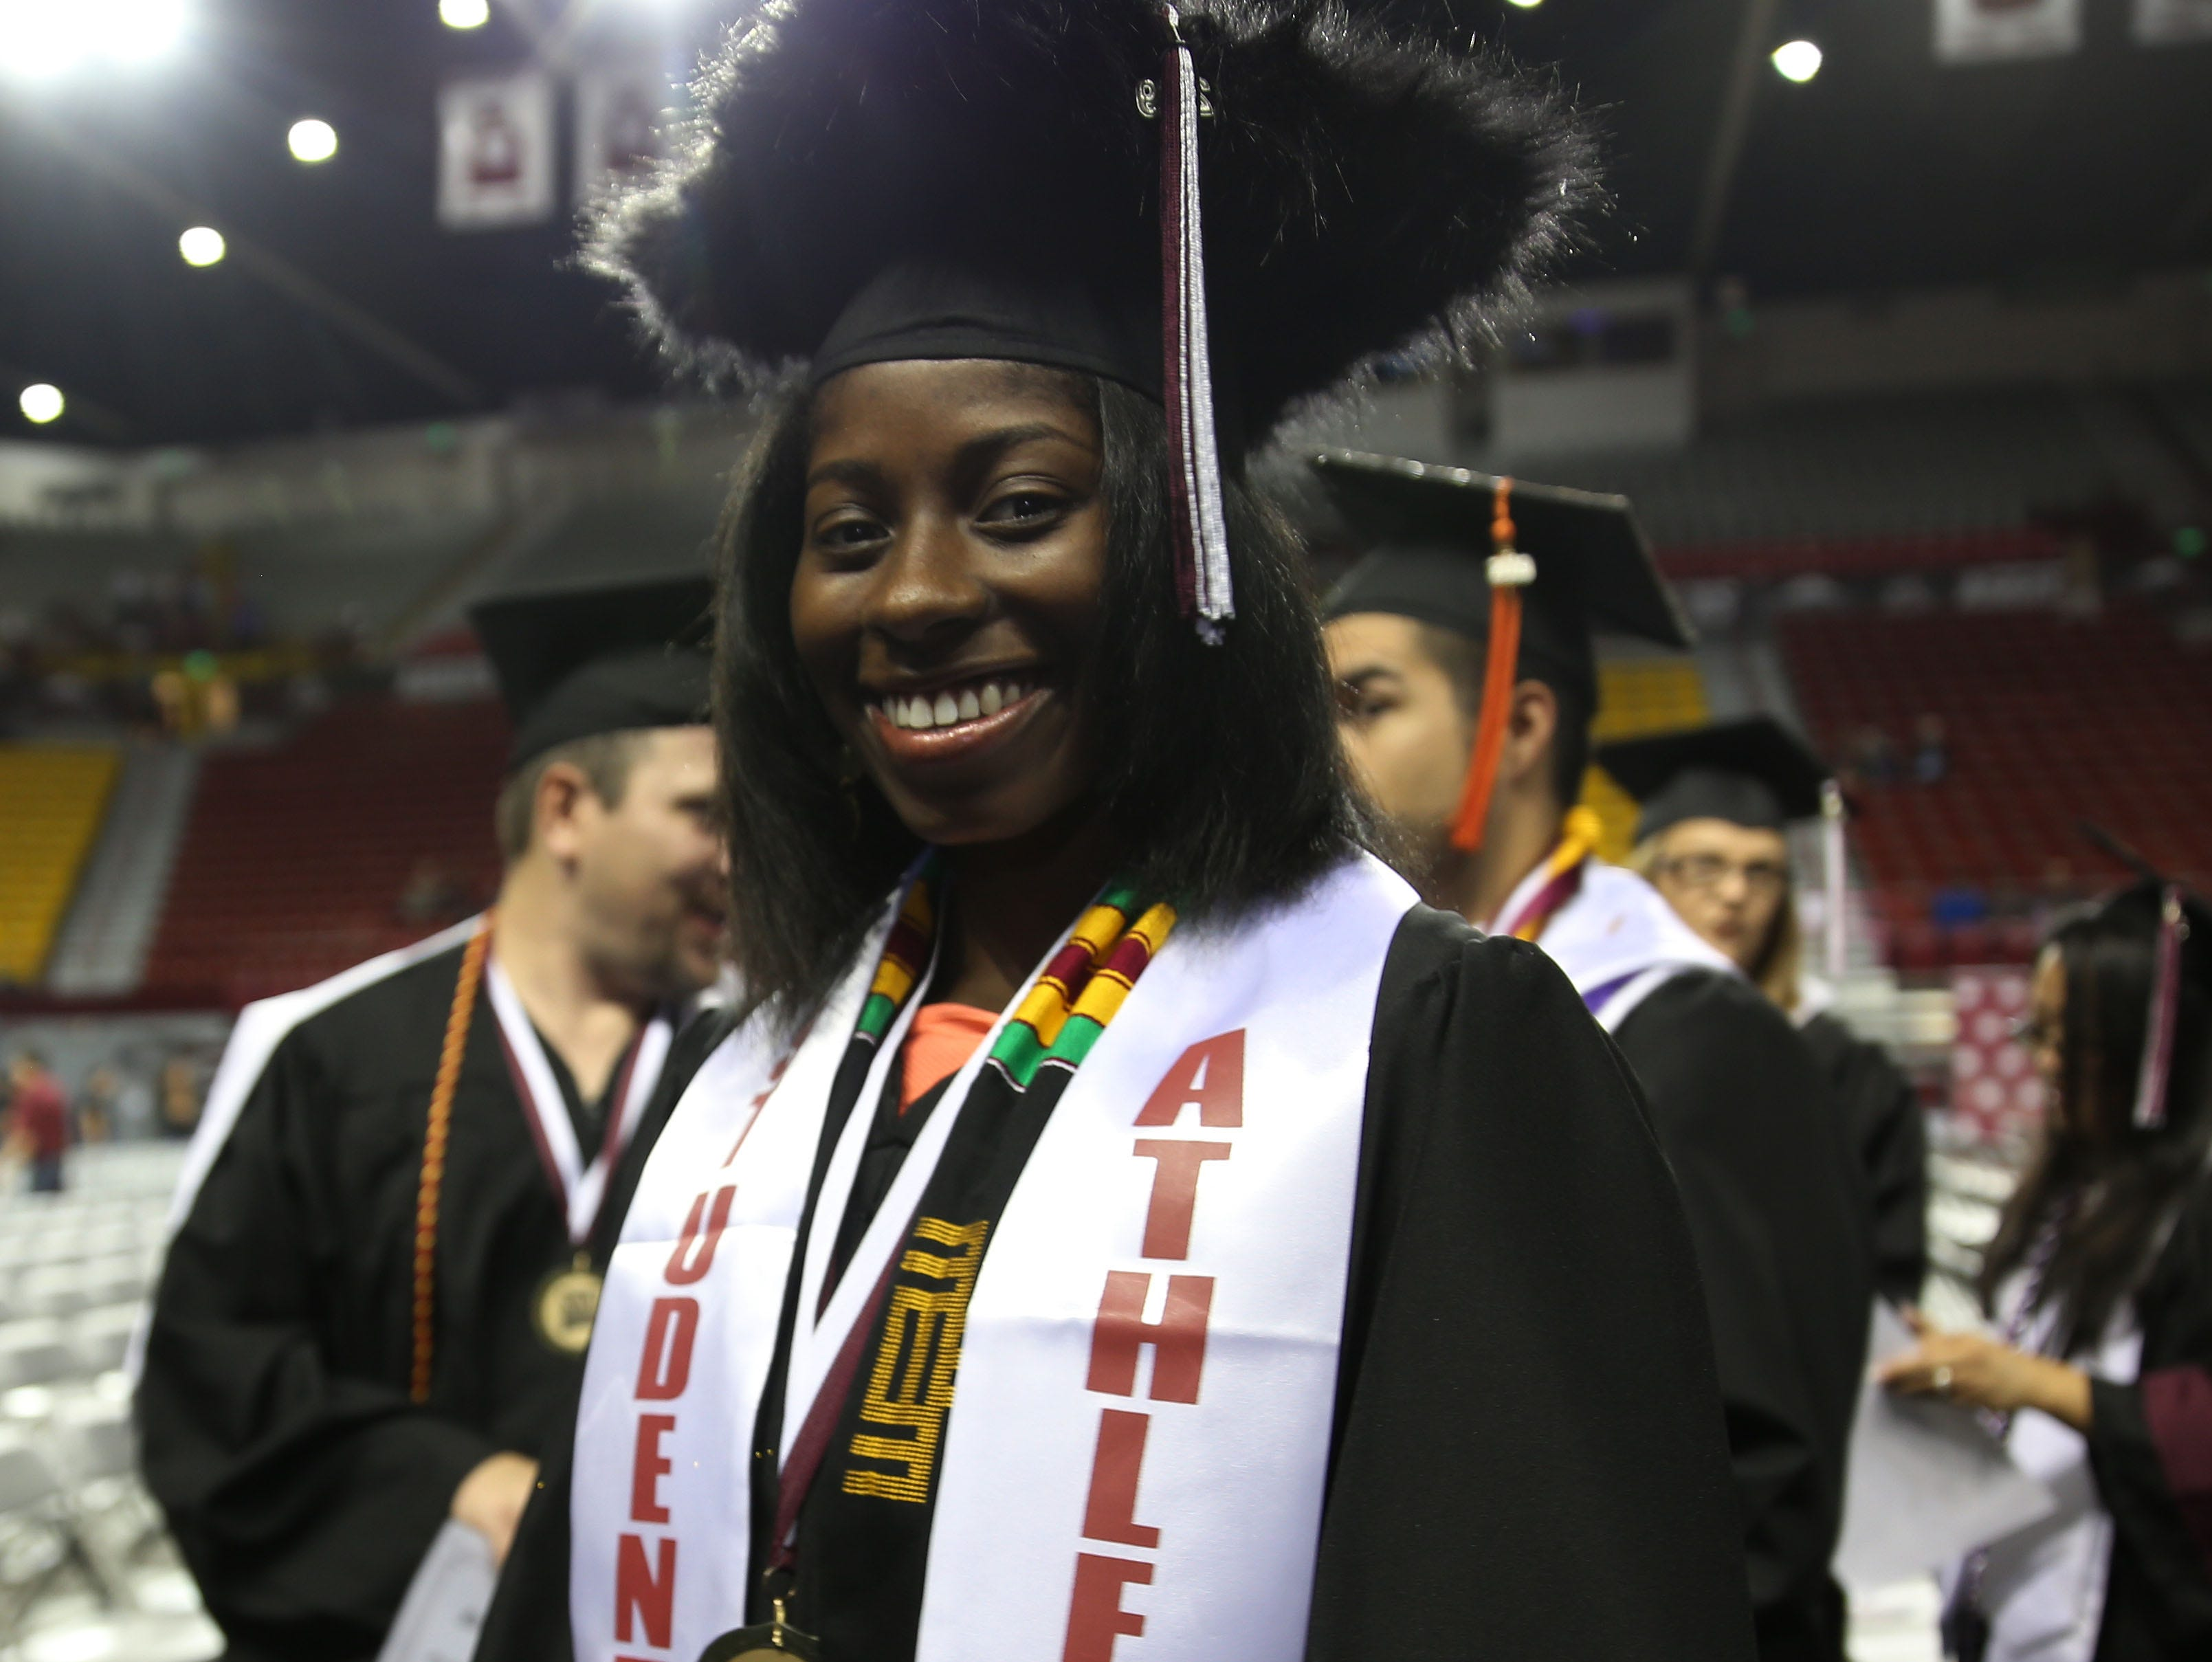 A New Mexico State University student athlete, now a graduate, smiles after receiving her degree, Saturday May 11, 2019.